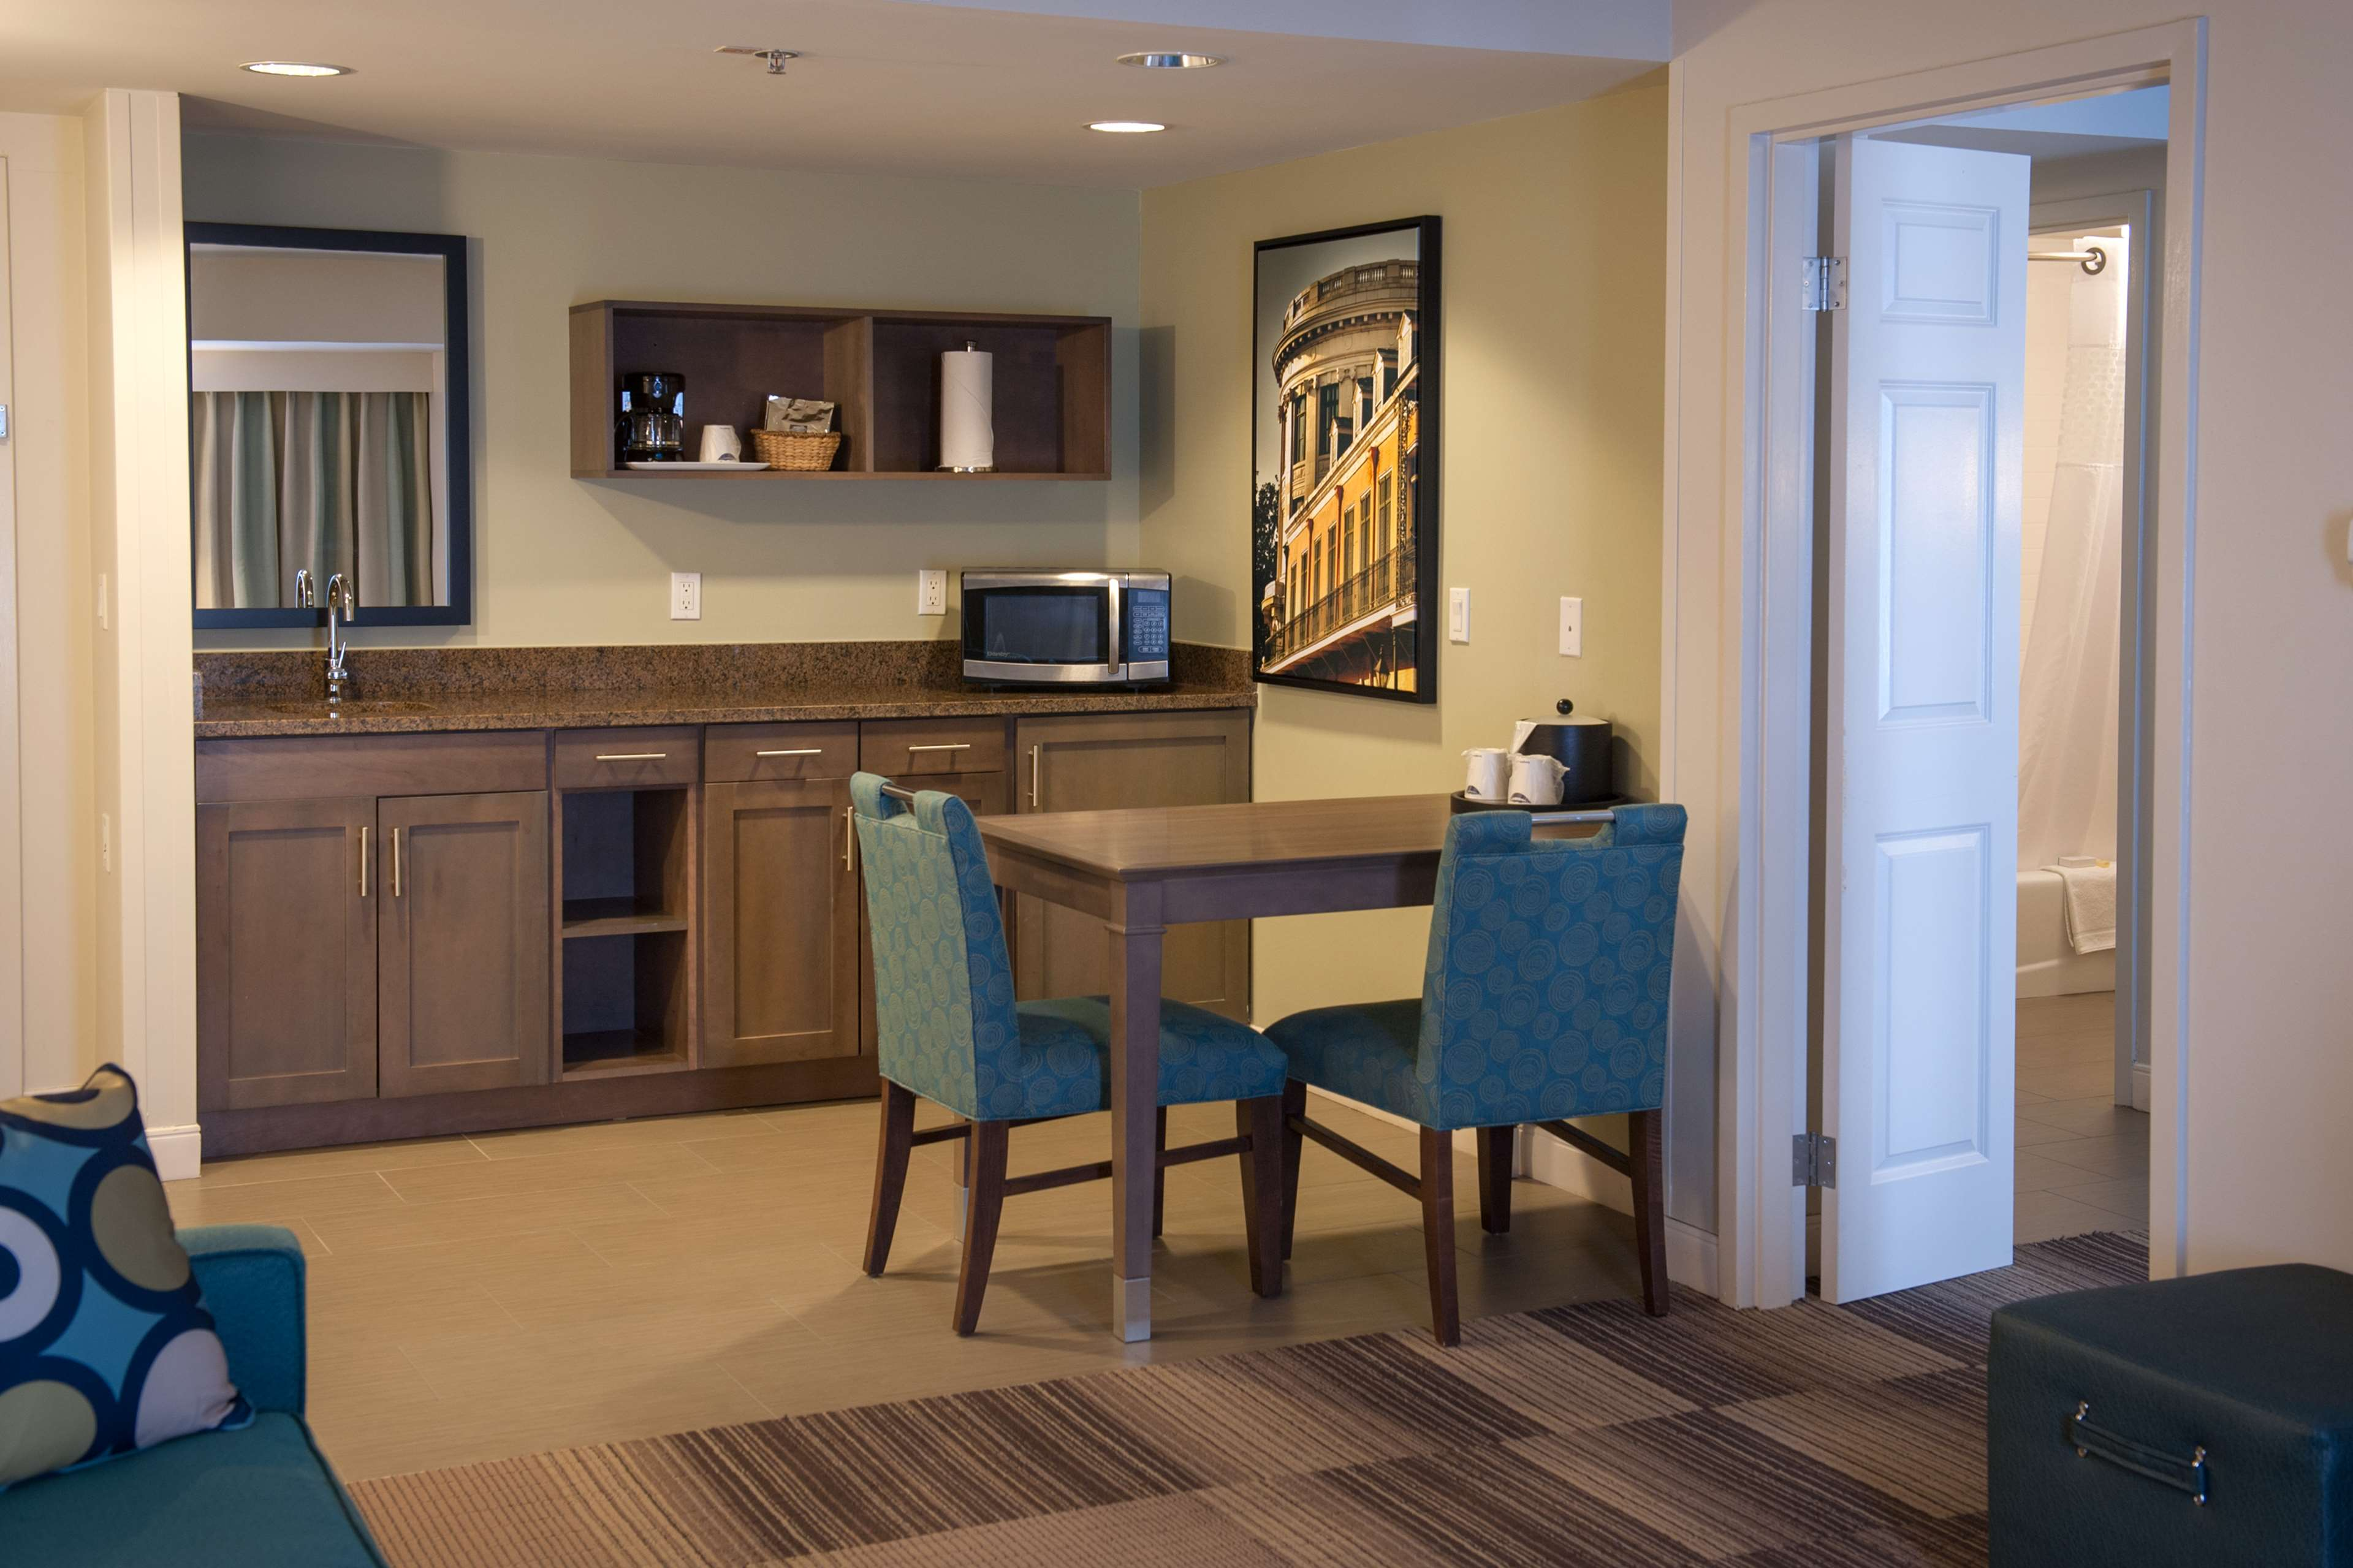 Hampton Inn & Suites New Orleans-Elmwood/Clearview Parkway Area image 13